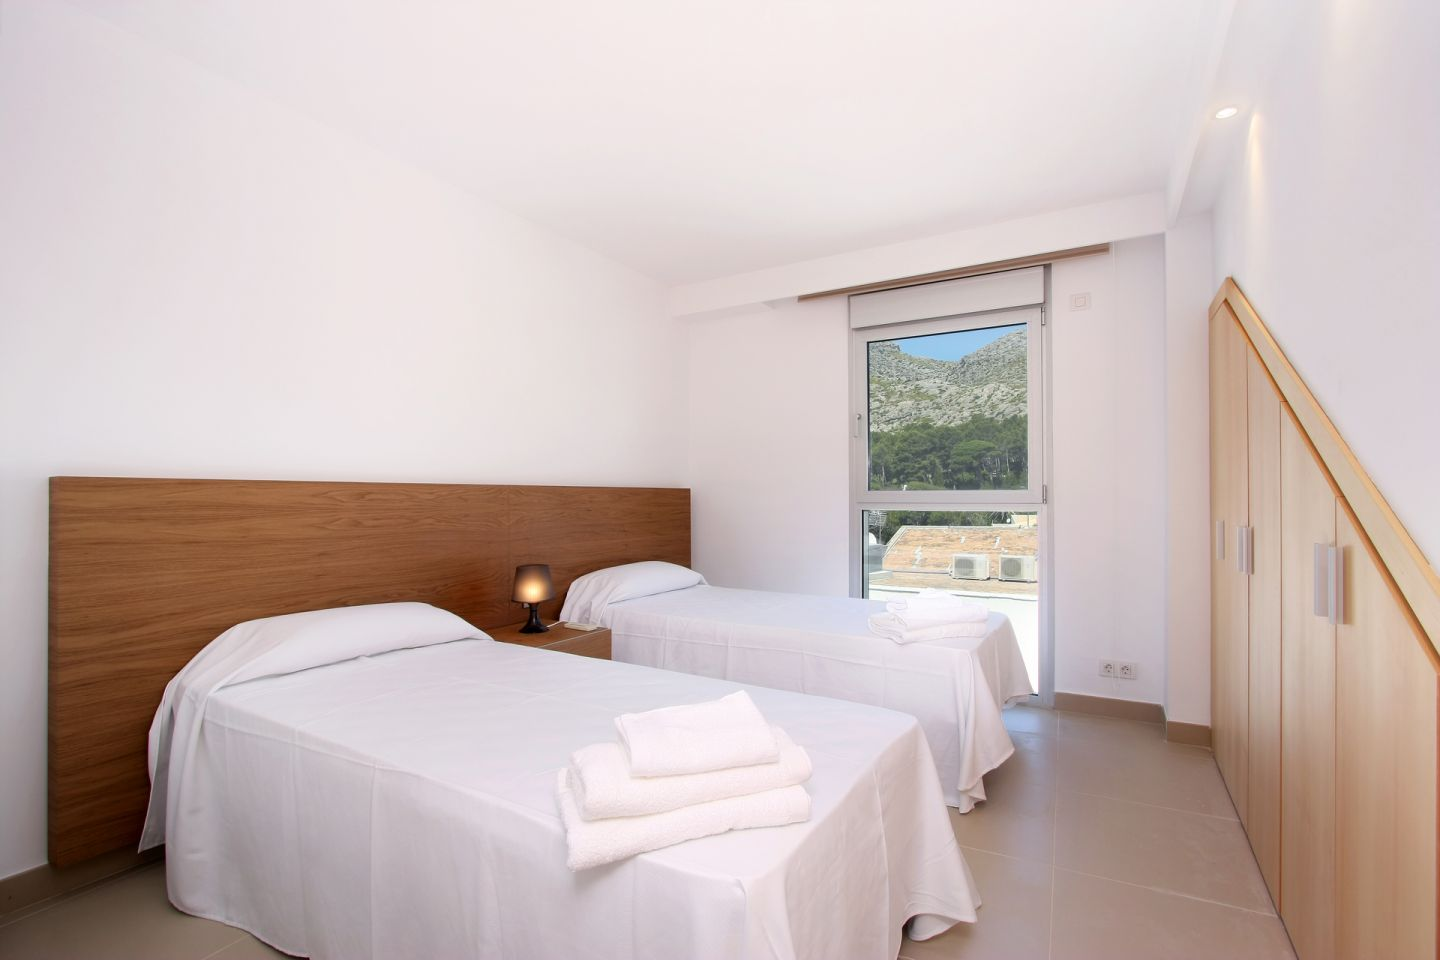 2 Bed Ground Floor for sale in Cala San Vicente 9